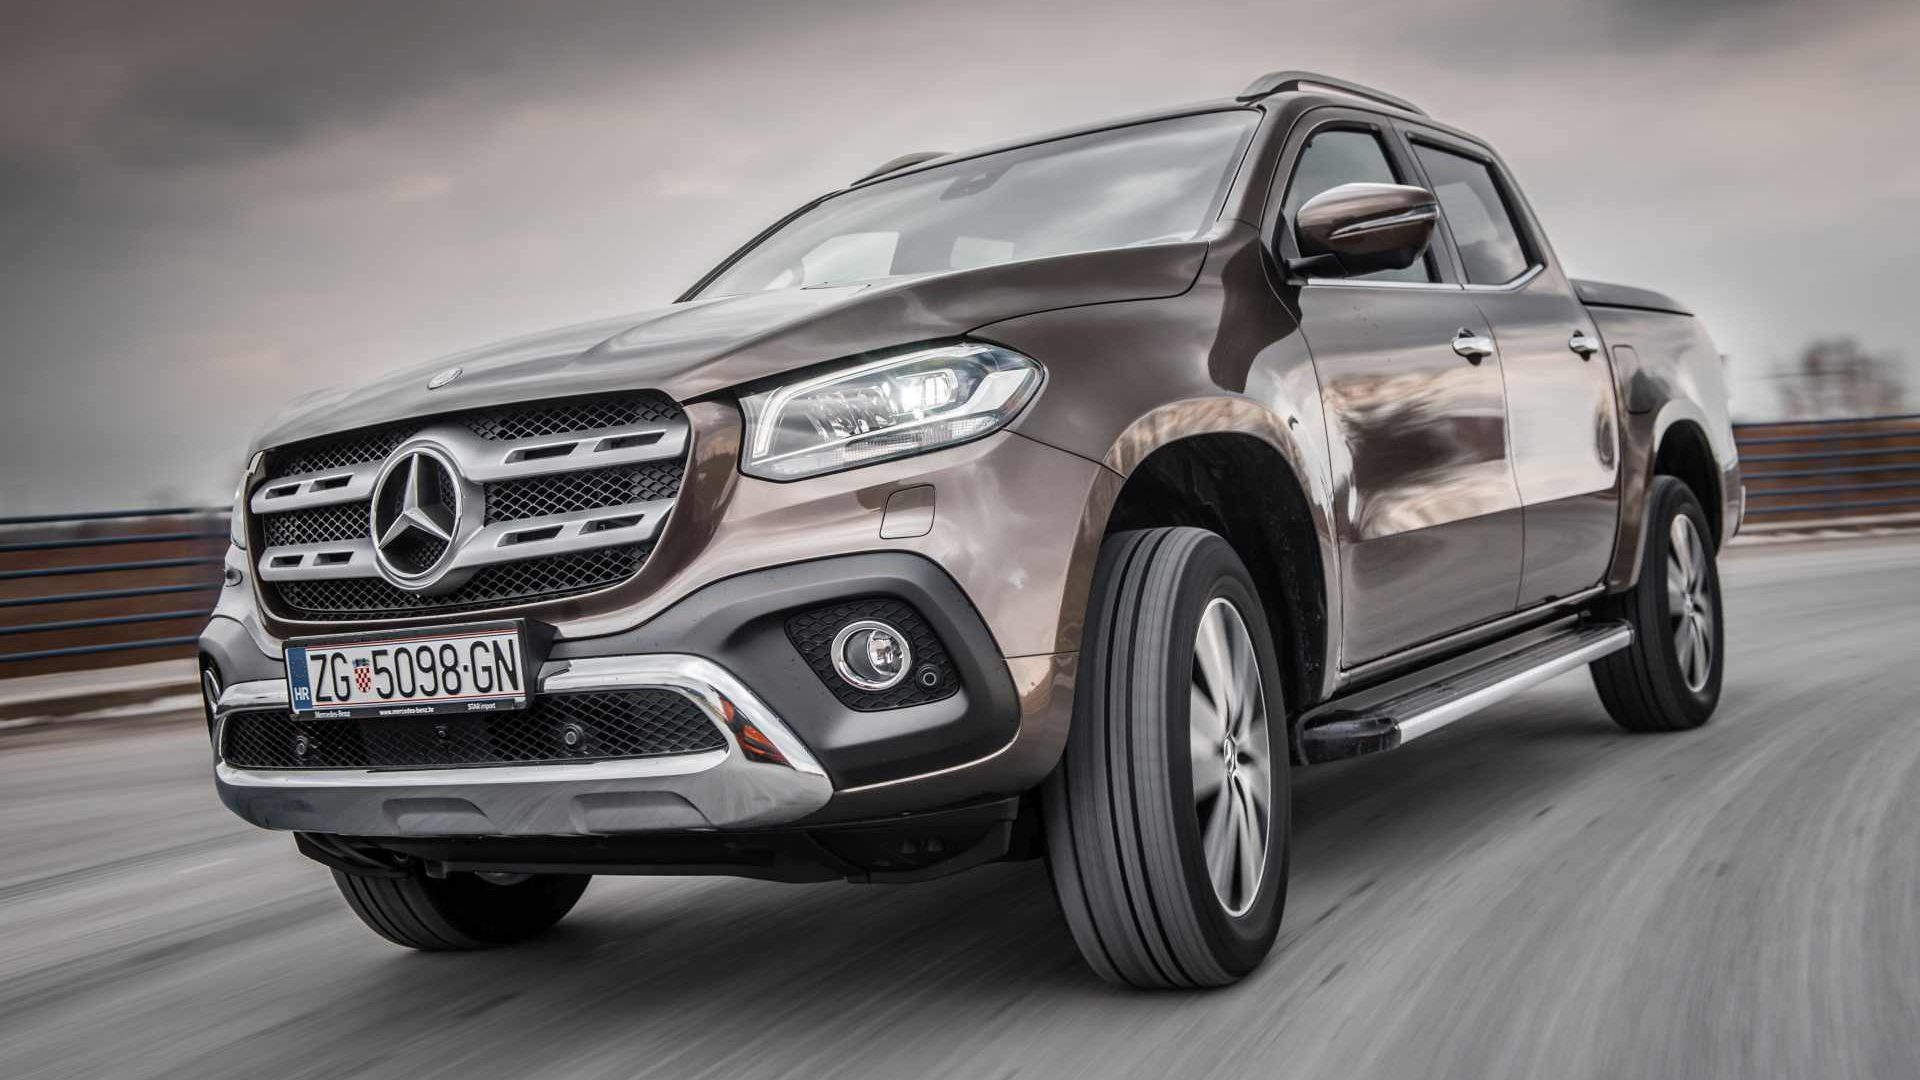 Image forTest Mercedes X-klasa 250d Power 4matic